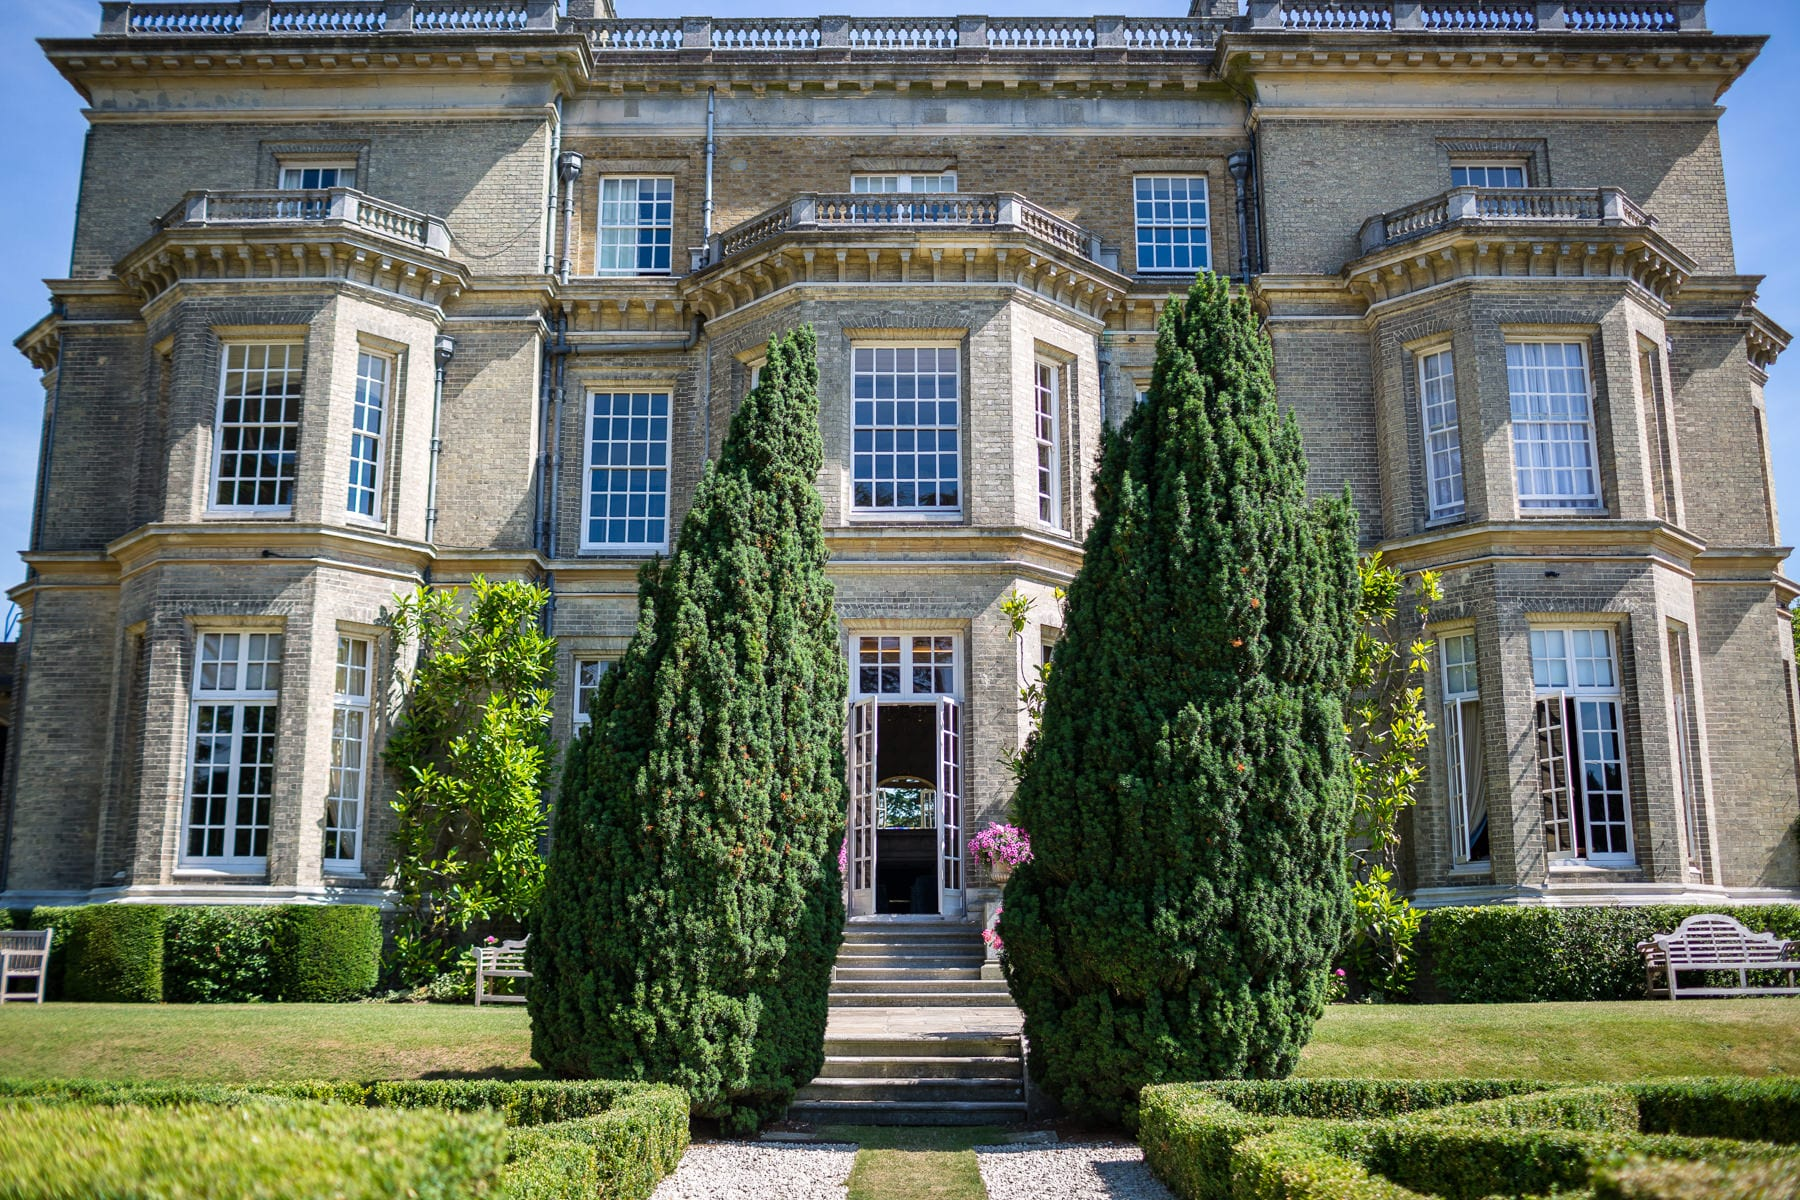 An image of Hedsor House wedding venue. By Hedsor House Wedding Photographer S2 Images